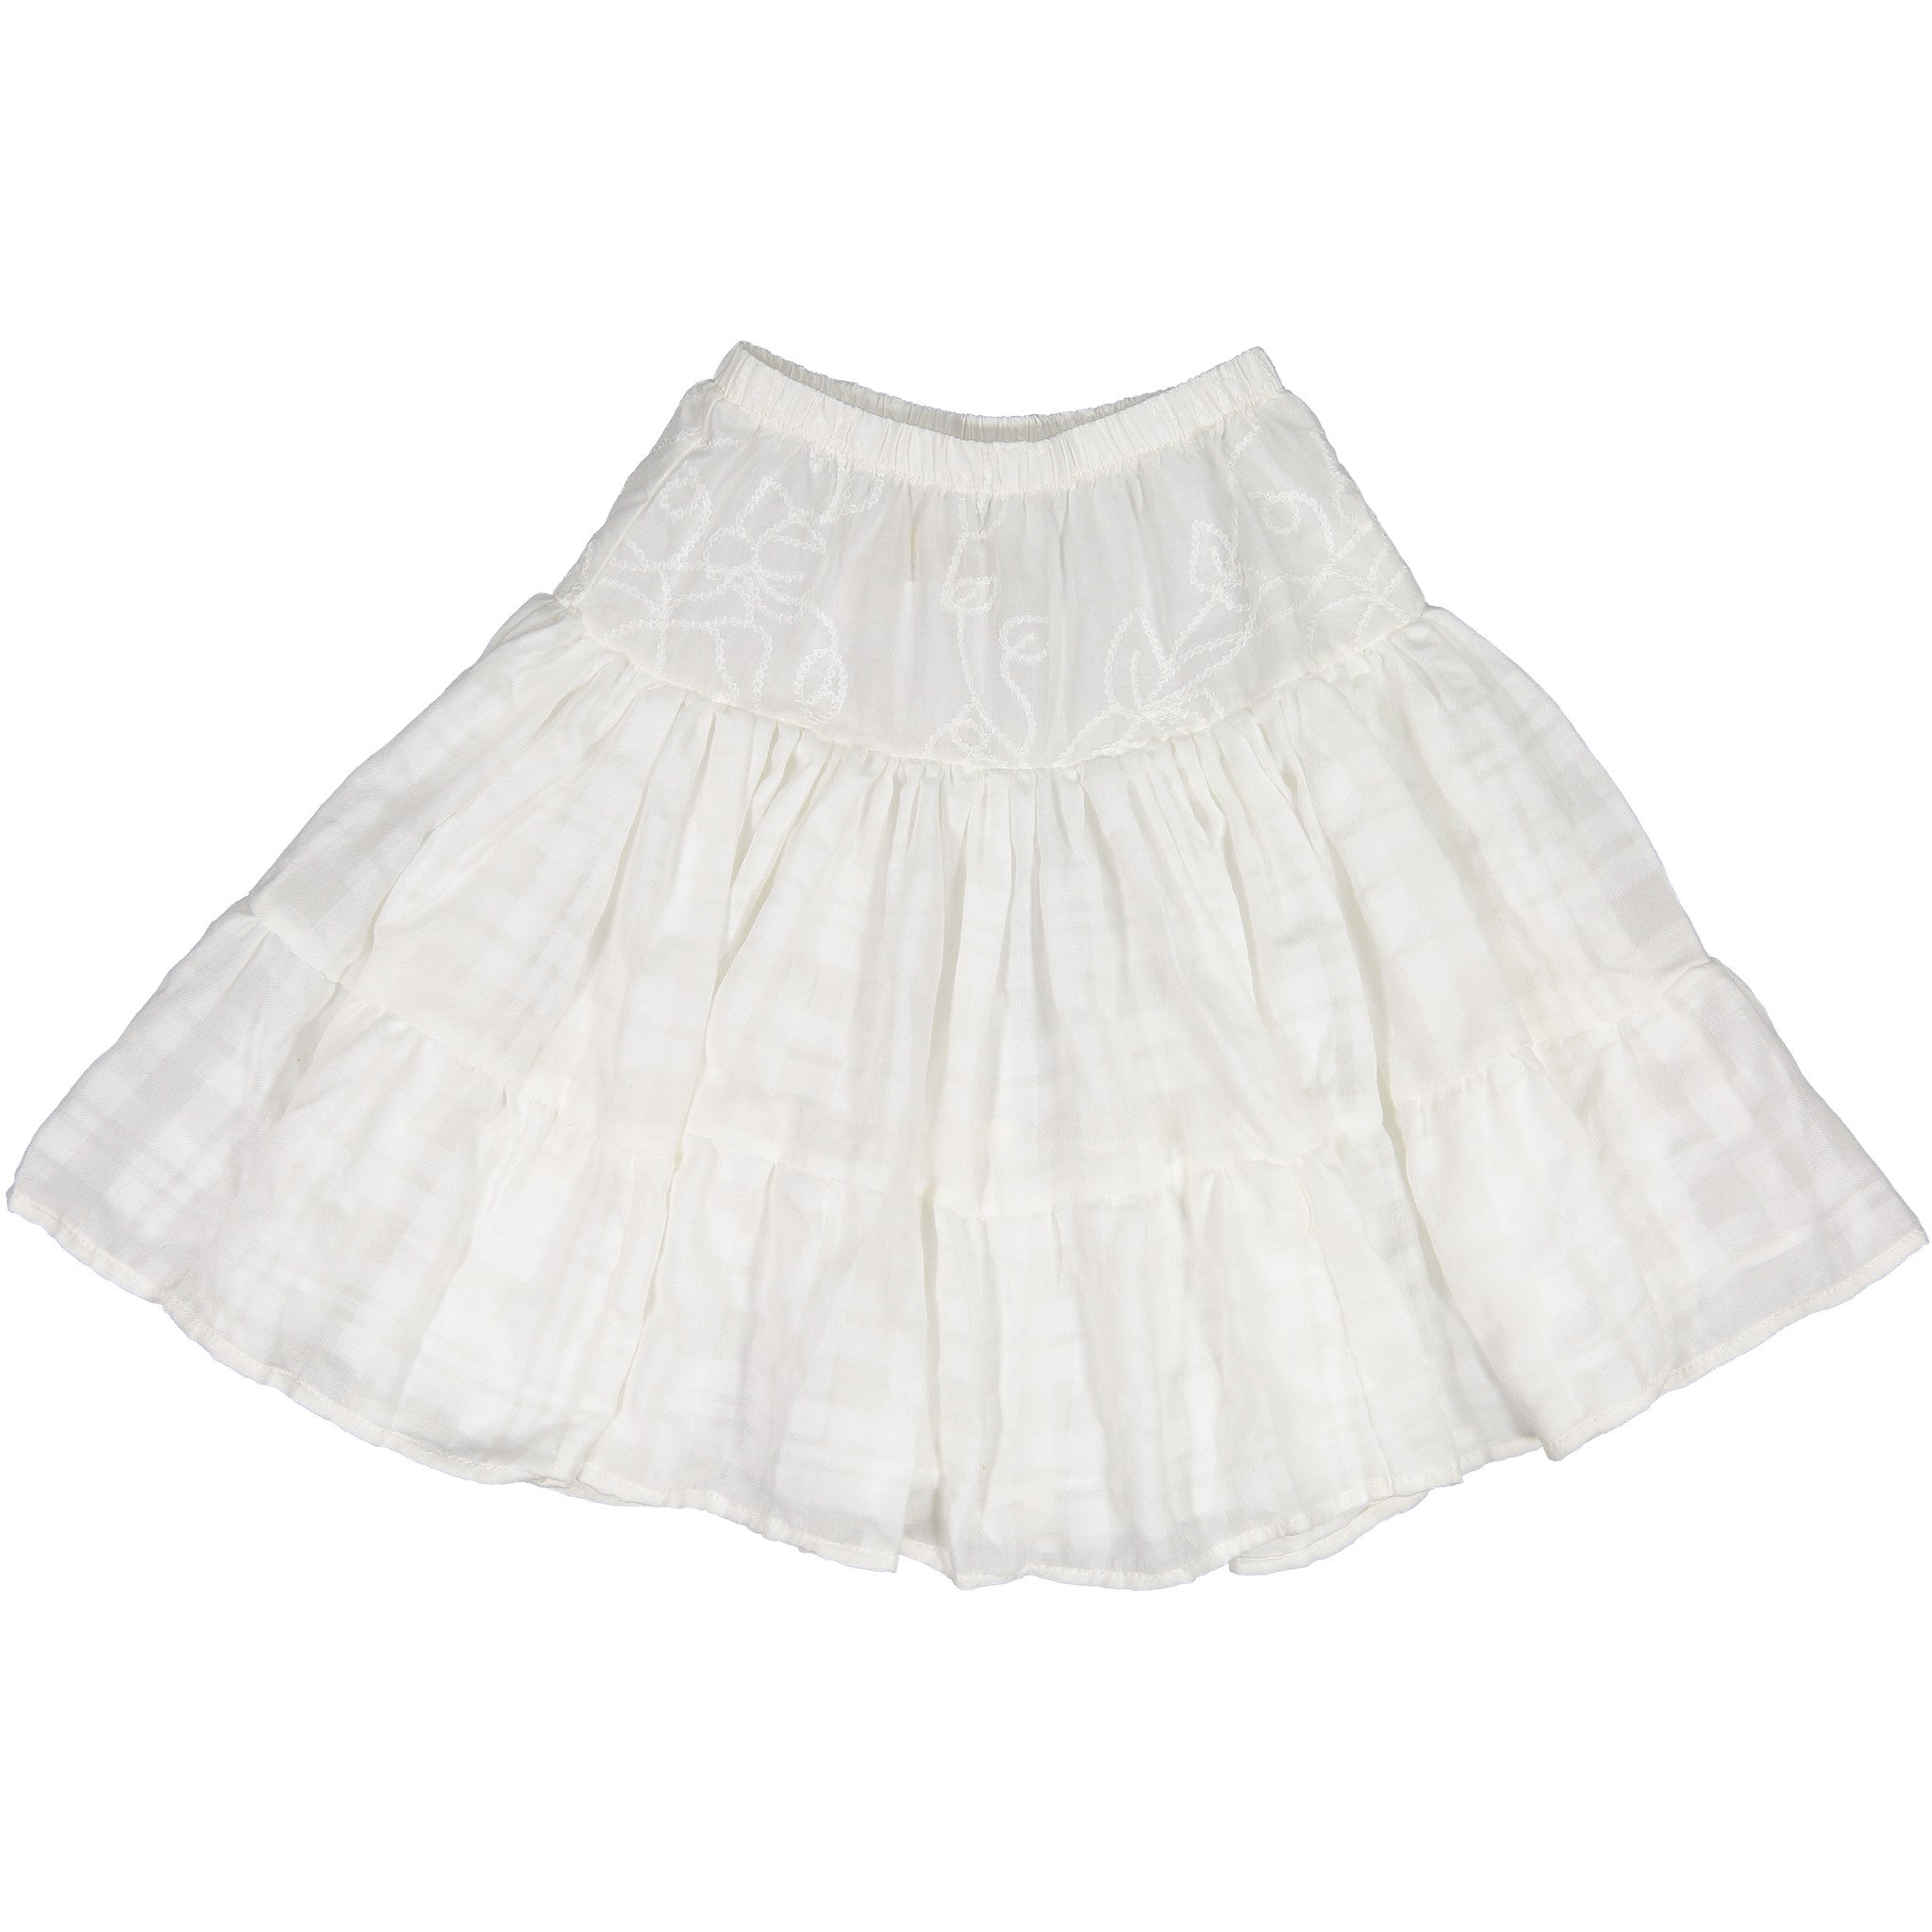 Atelier Barn White Tiered Embroidered Skirt - Ladida